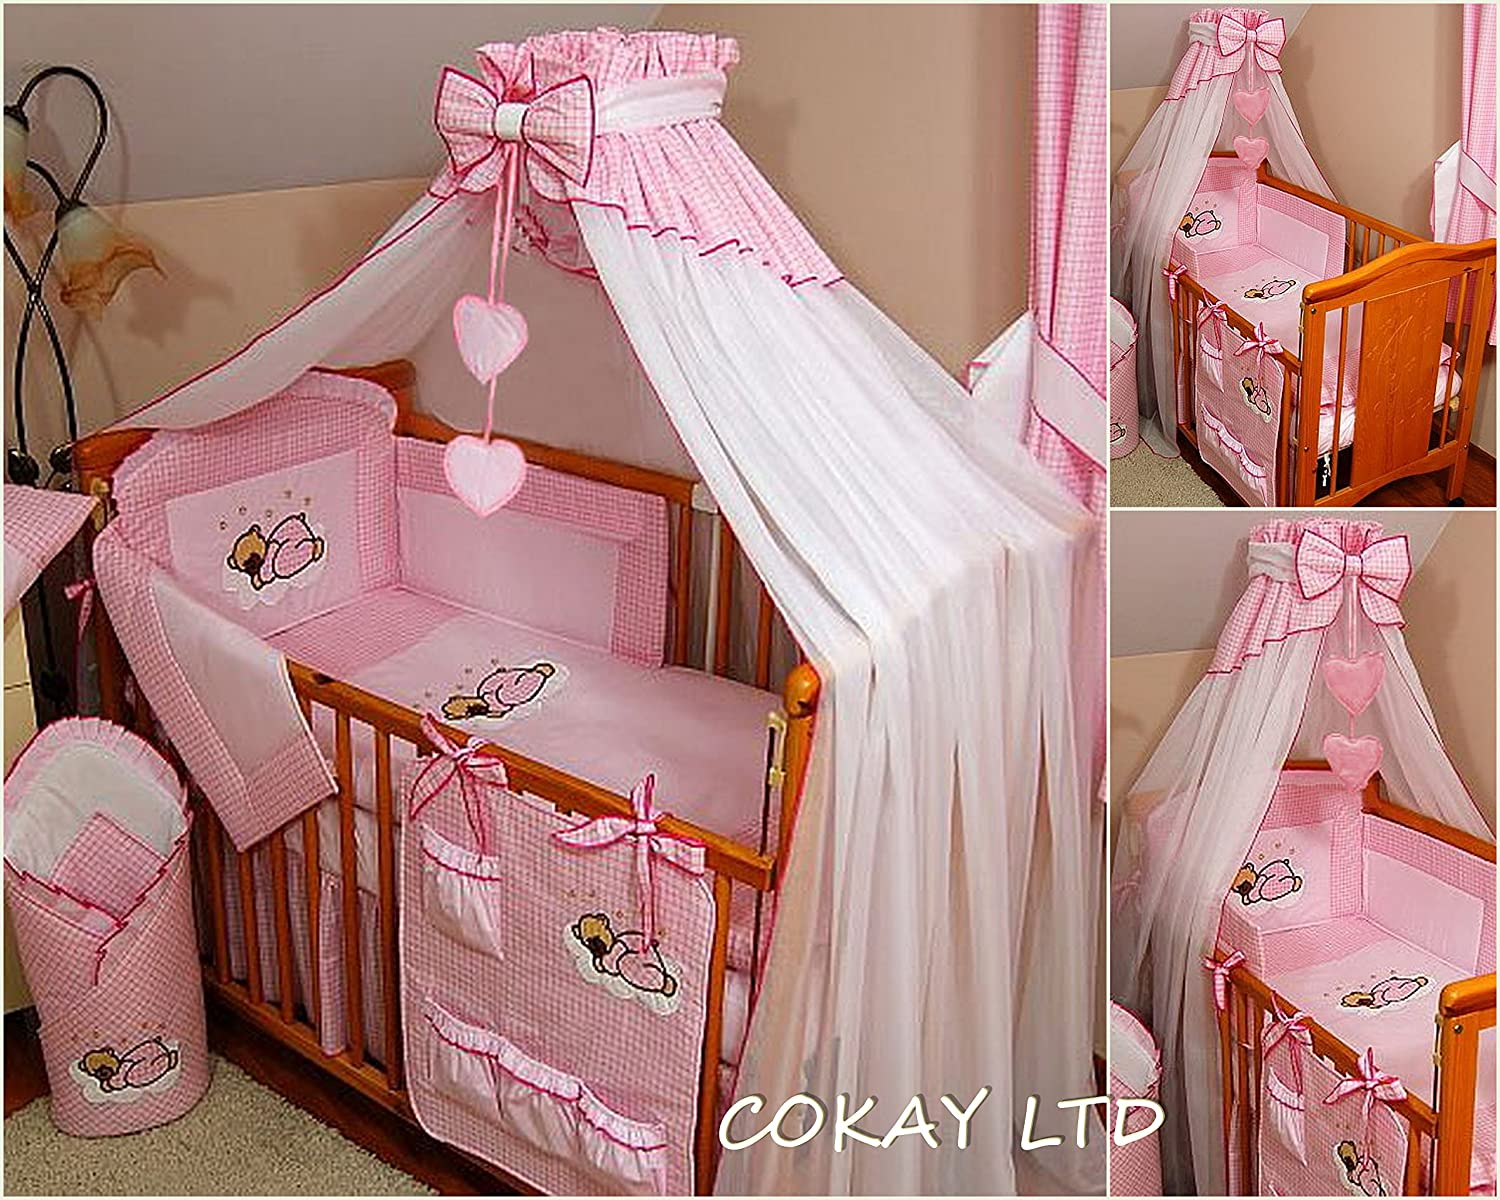 8 pcs BABY BEDDING SET /BUMPER/CANOPY /HOLDER to fit COT BED 140 x 70cm (PINK) HEARTS COKAY LTD